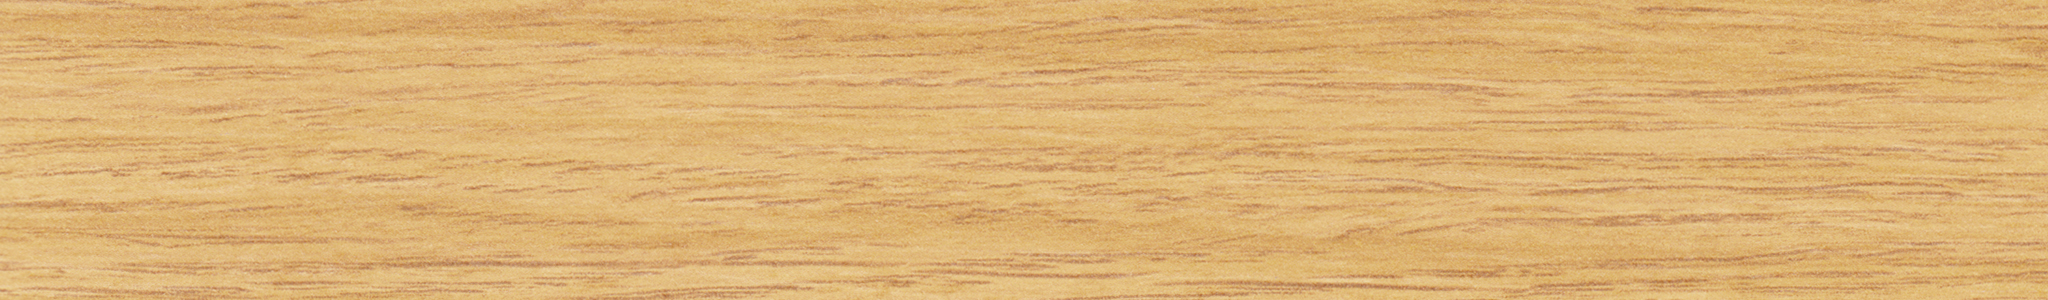 HD 64106 Melamine Edge FALZ Oak Smooth